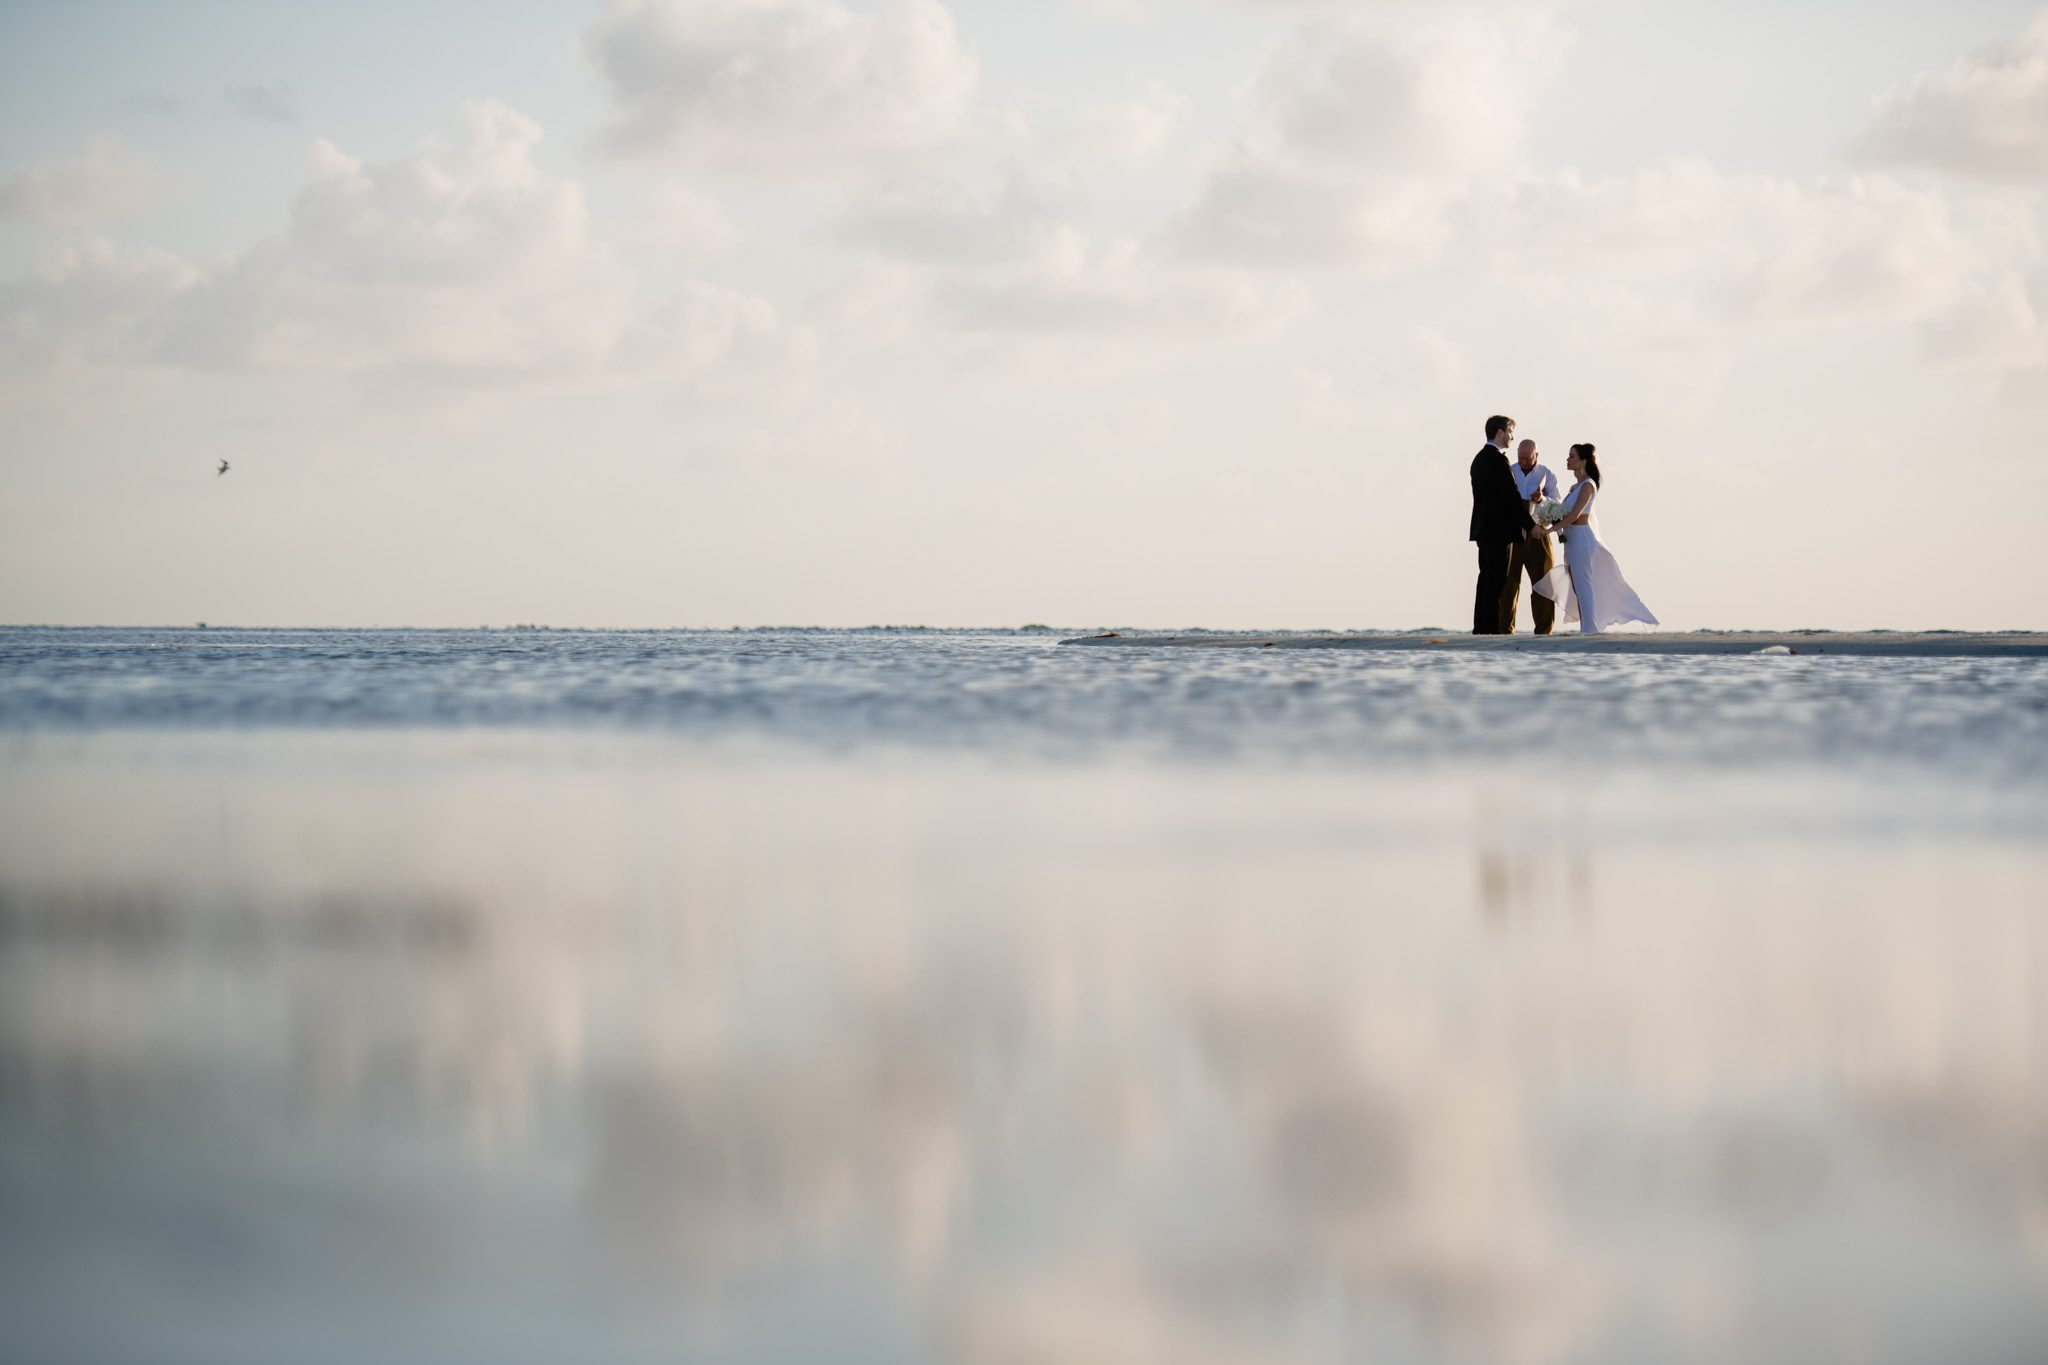 couple standing on the beach after getting married